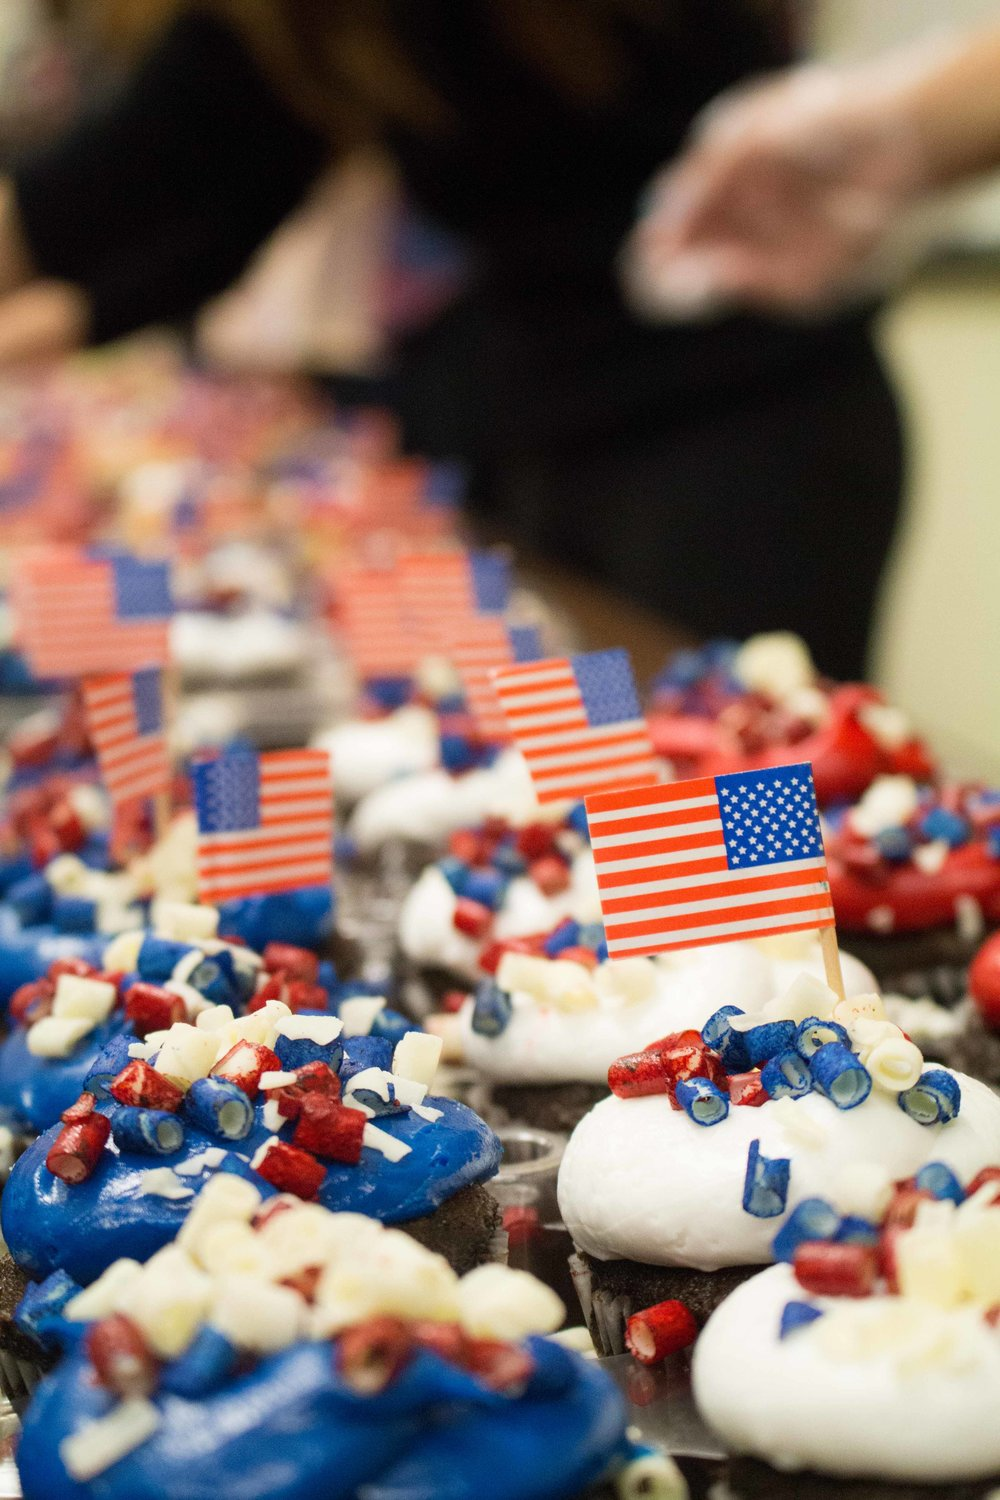 The Associated Students of Santa Monica College offer cupcakes decorated in our nation's patriotic colors are ready for Santa Monica College students to enjoy in the Cayton Center in the Santa Monica College campus in Santa Monica, Calif on Tuesday, Nov 9, 2016.